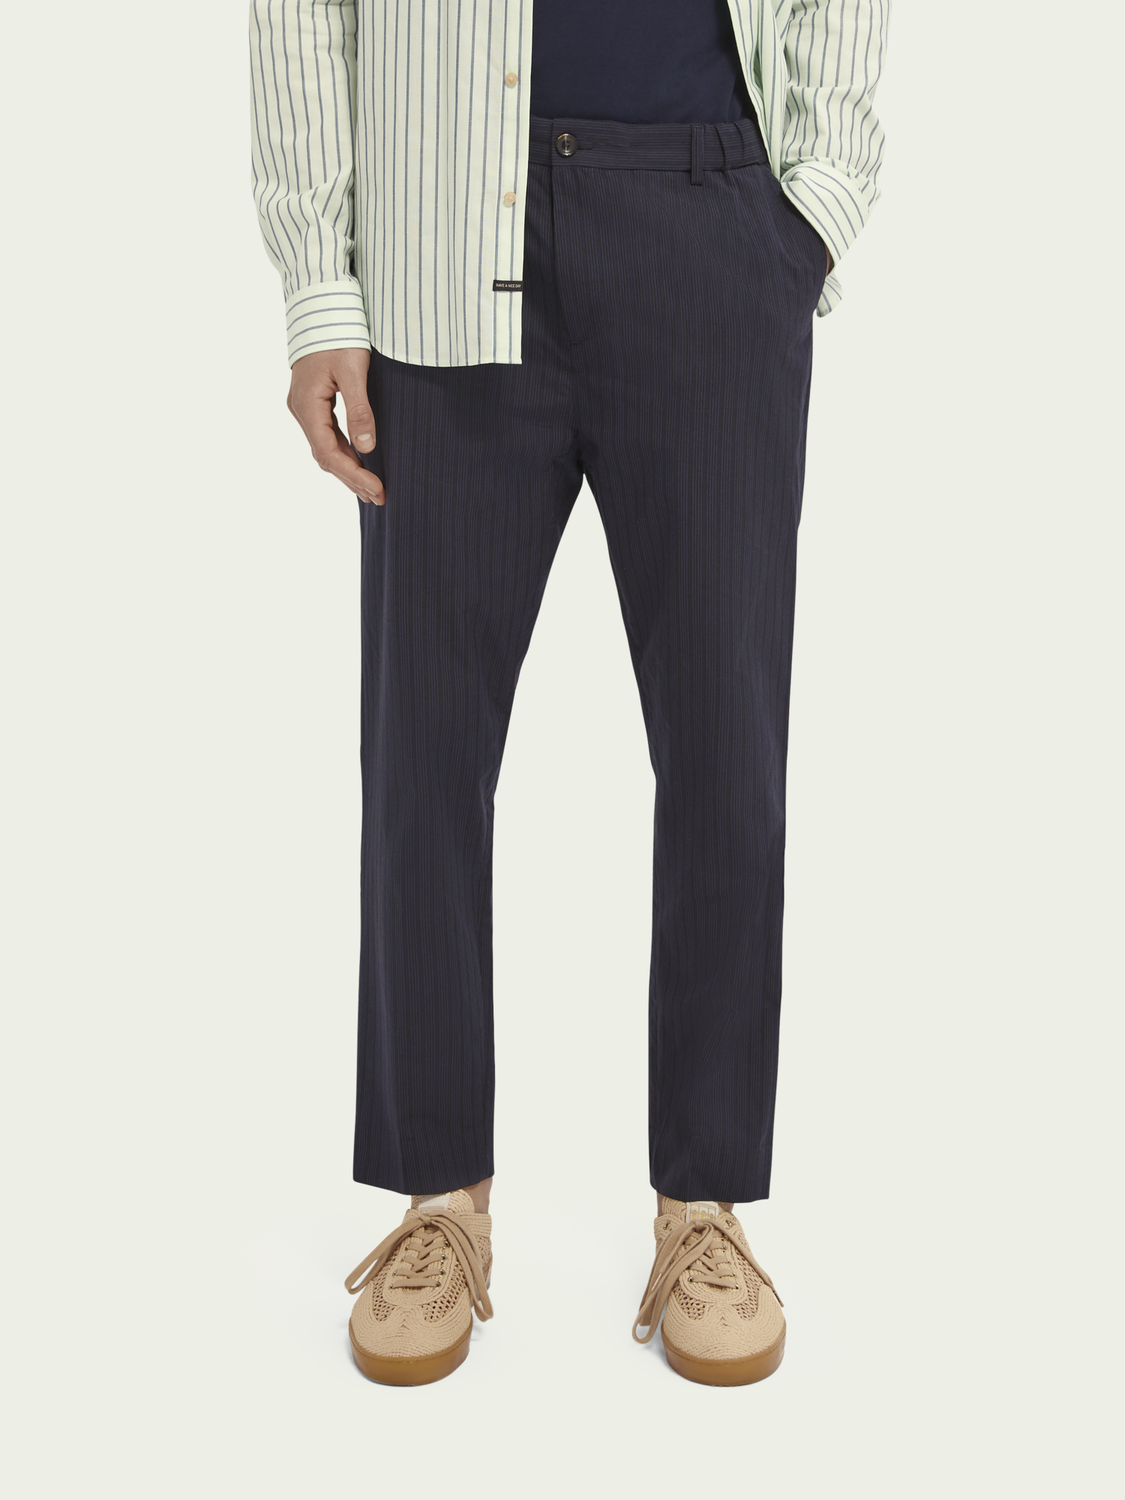 Men FAVE mid-rise cotton chino